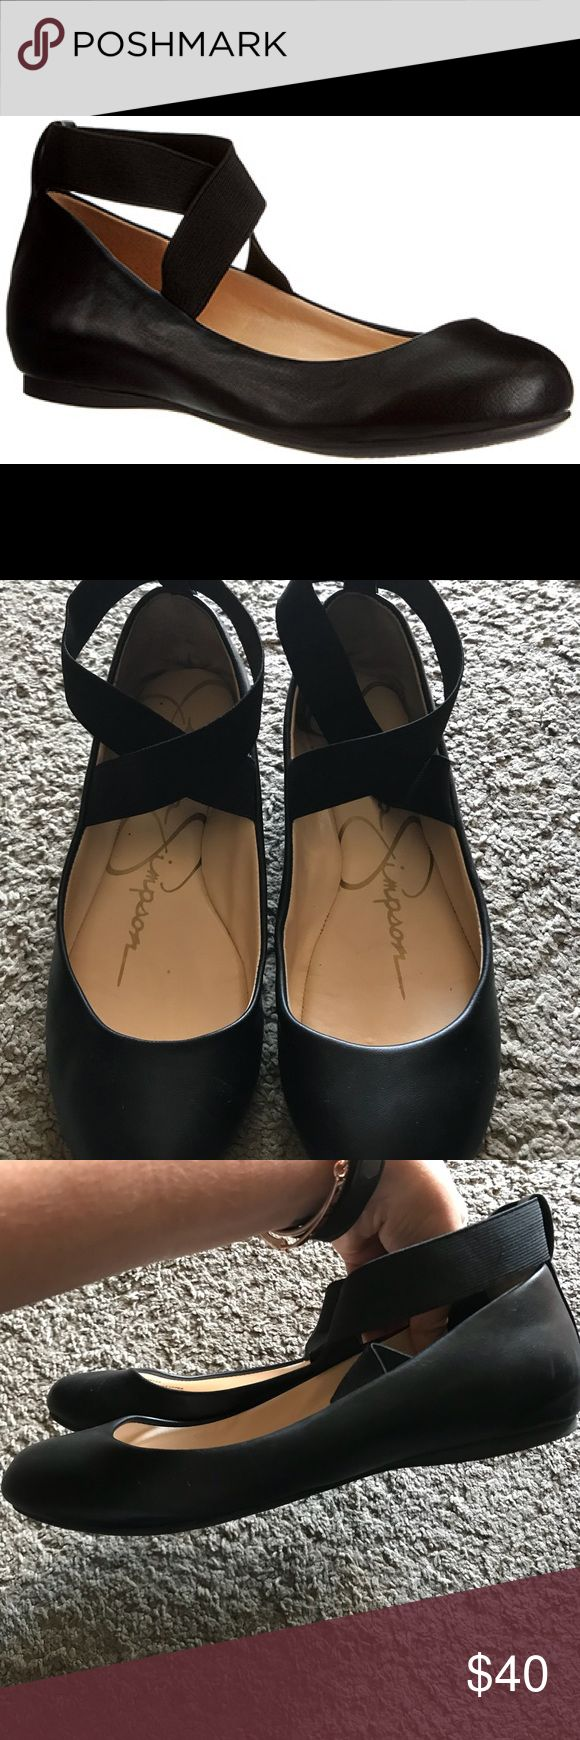 Jessica Simpson ballet flats Classic round toe silhouette, criss-cross ankle strap. Great condition. Jessica Simpson Shoes Flats & Loafers